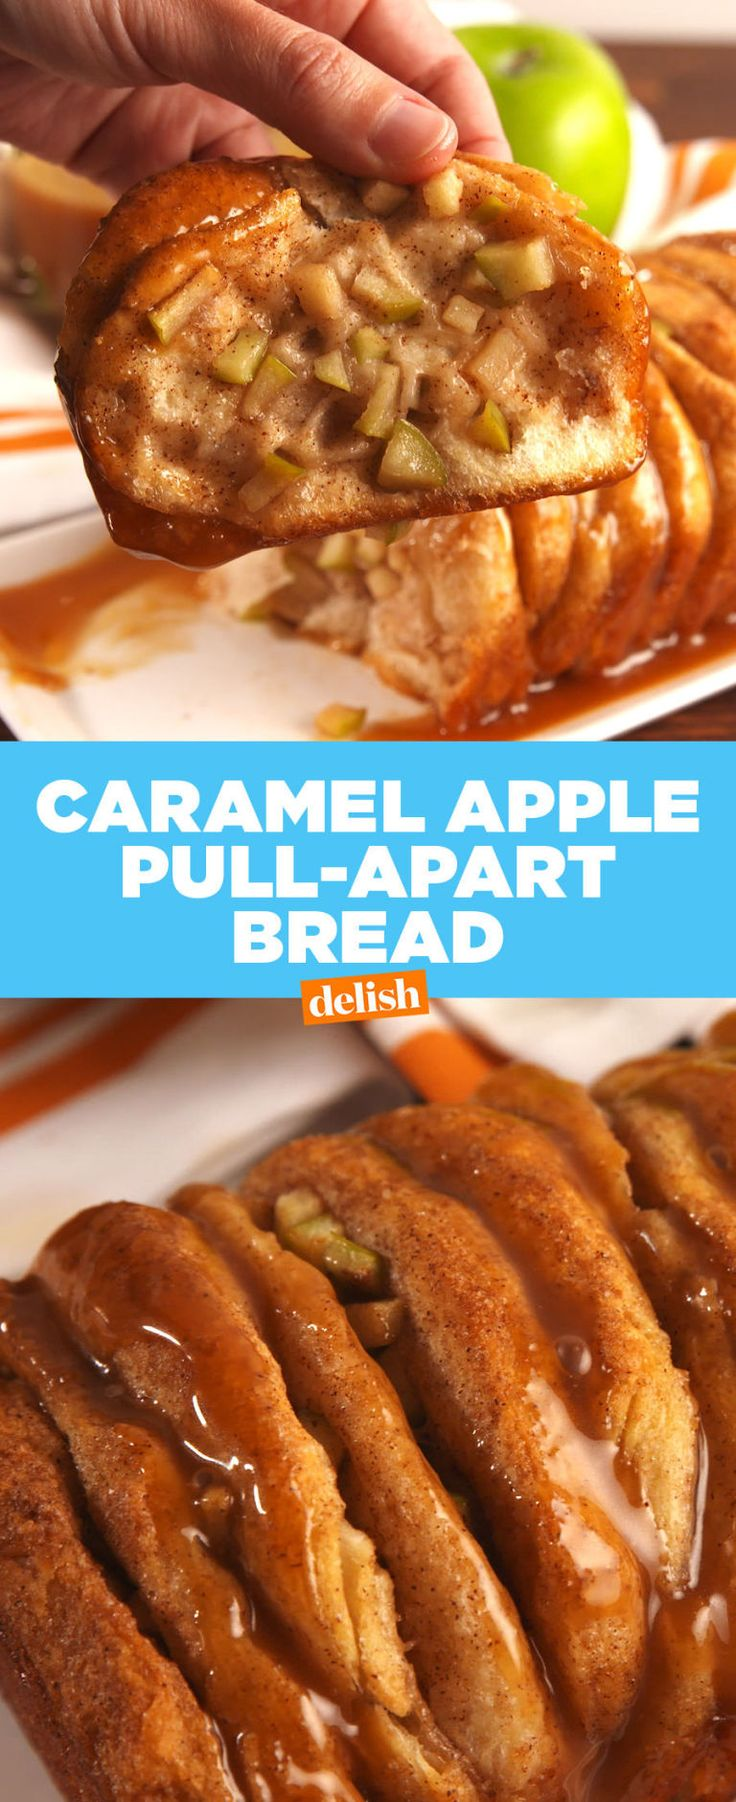 Caramel Apple Pull-Apart Bread